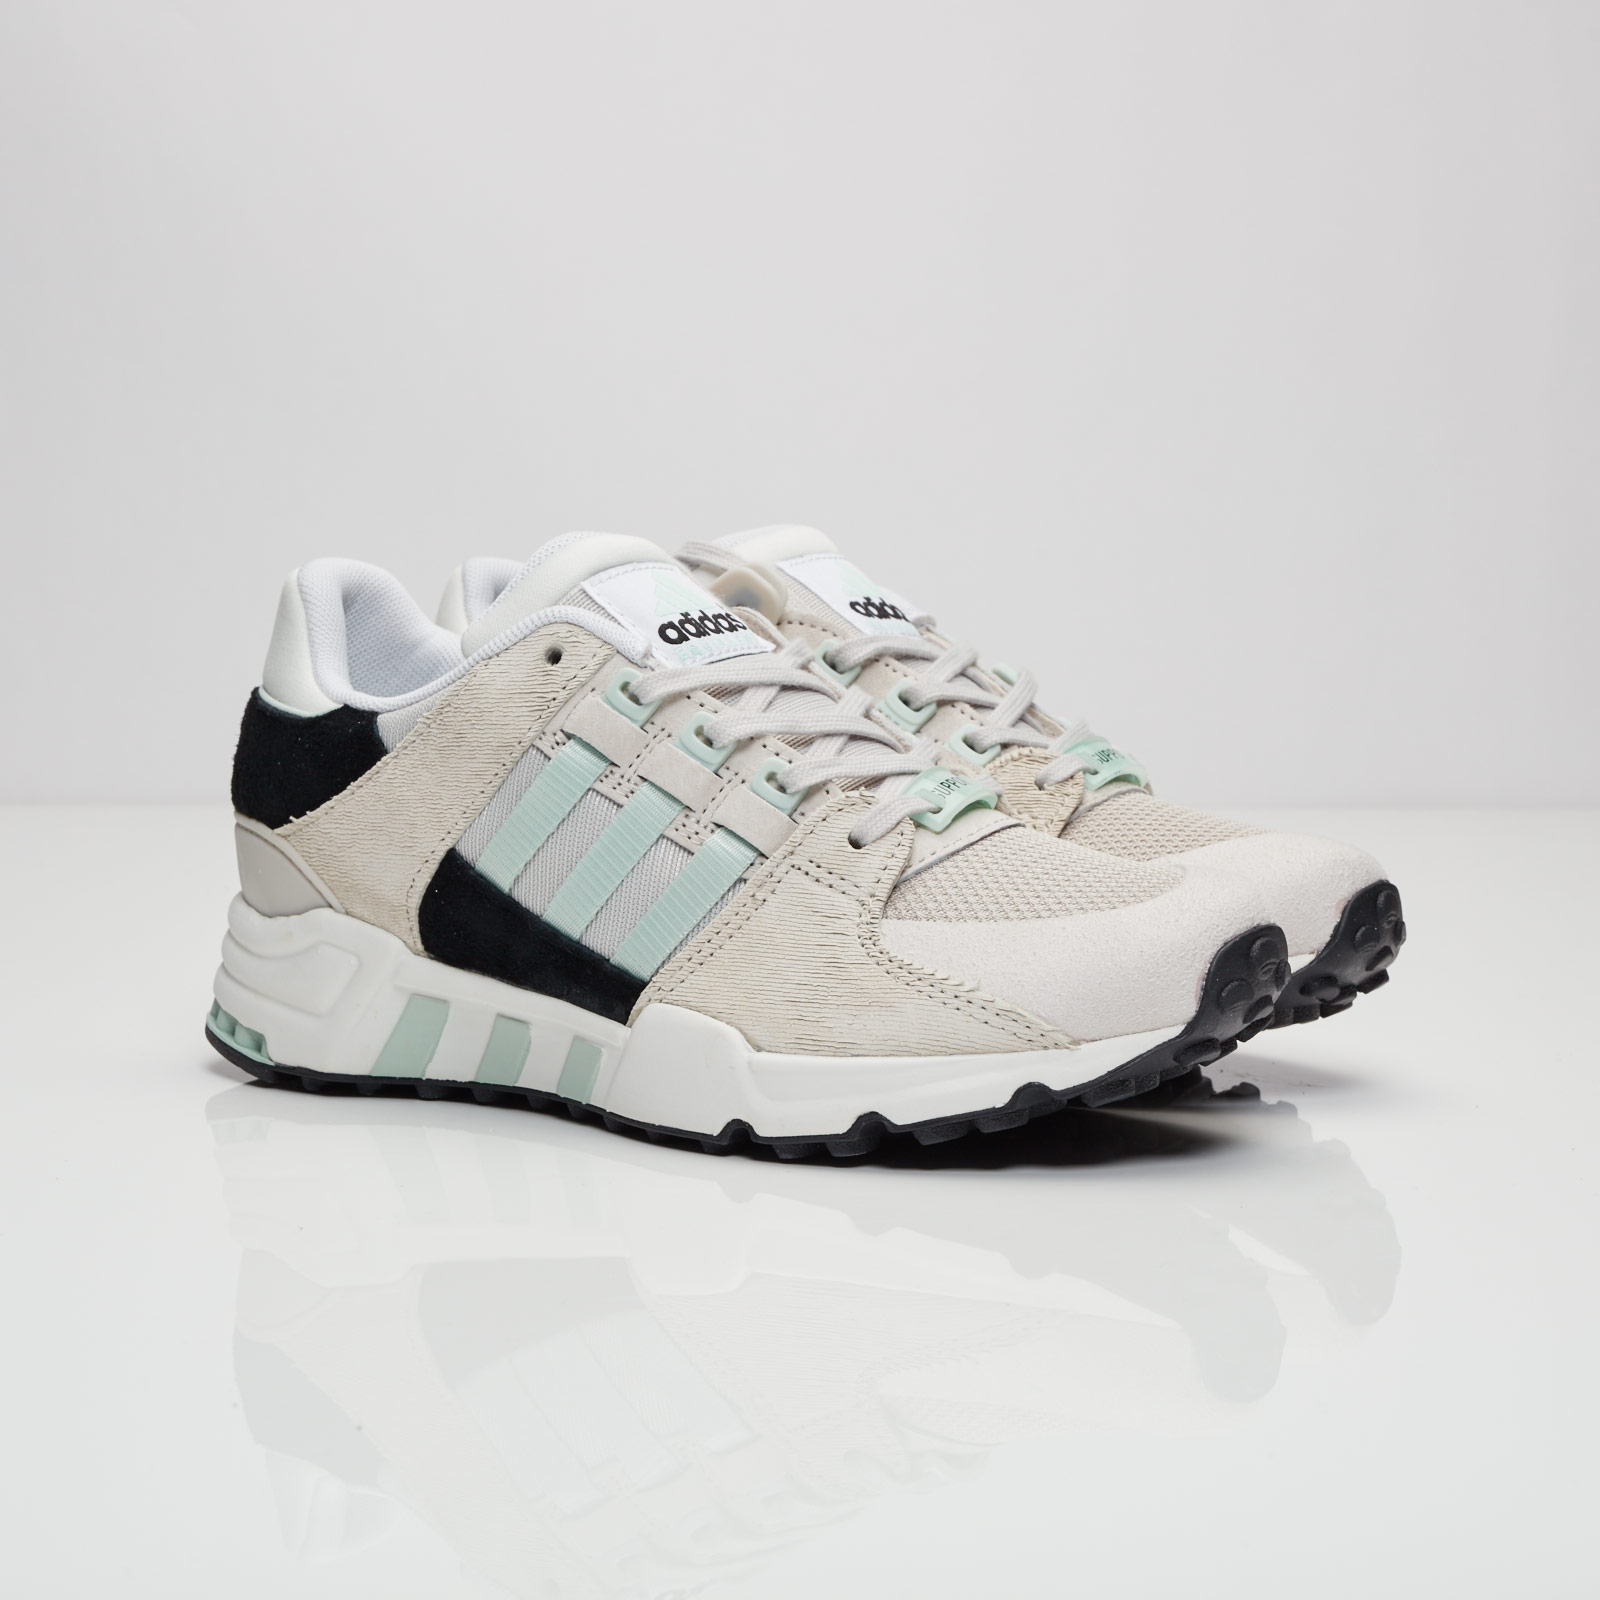 cheap for discount a6a55 6fecb adidas Equipment Support 93 W - S76065 - Sneakersnstuff ...